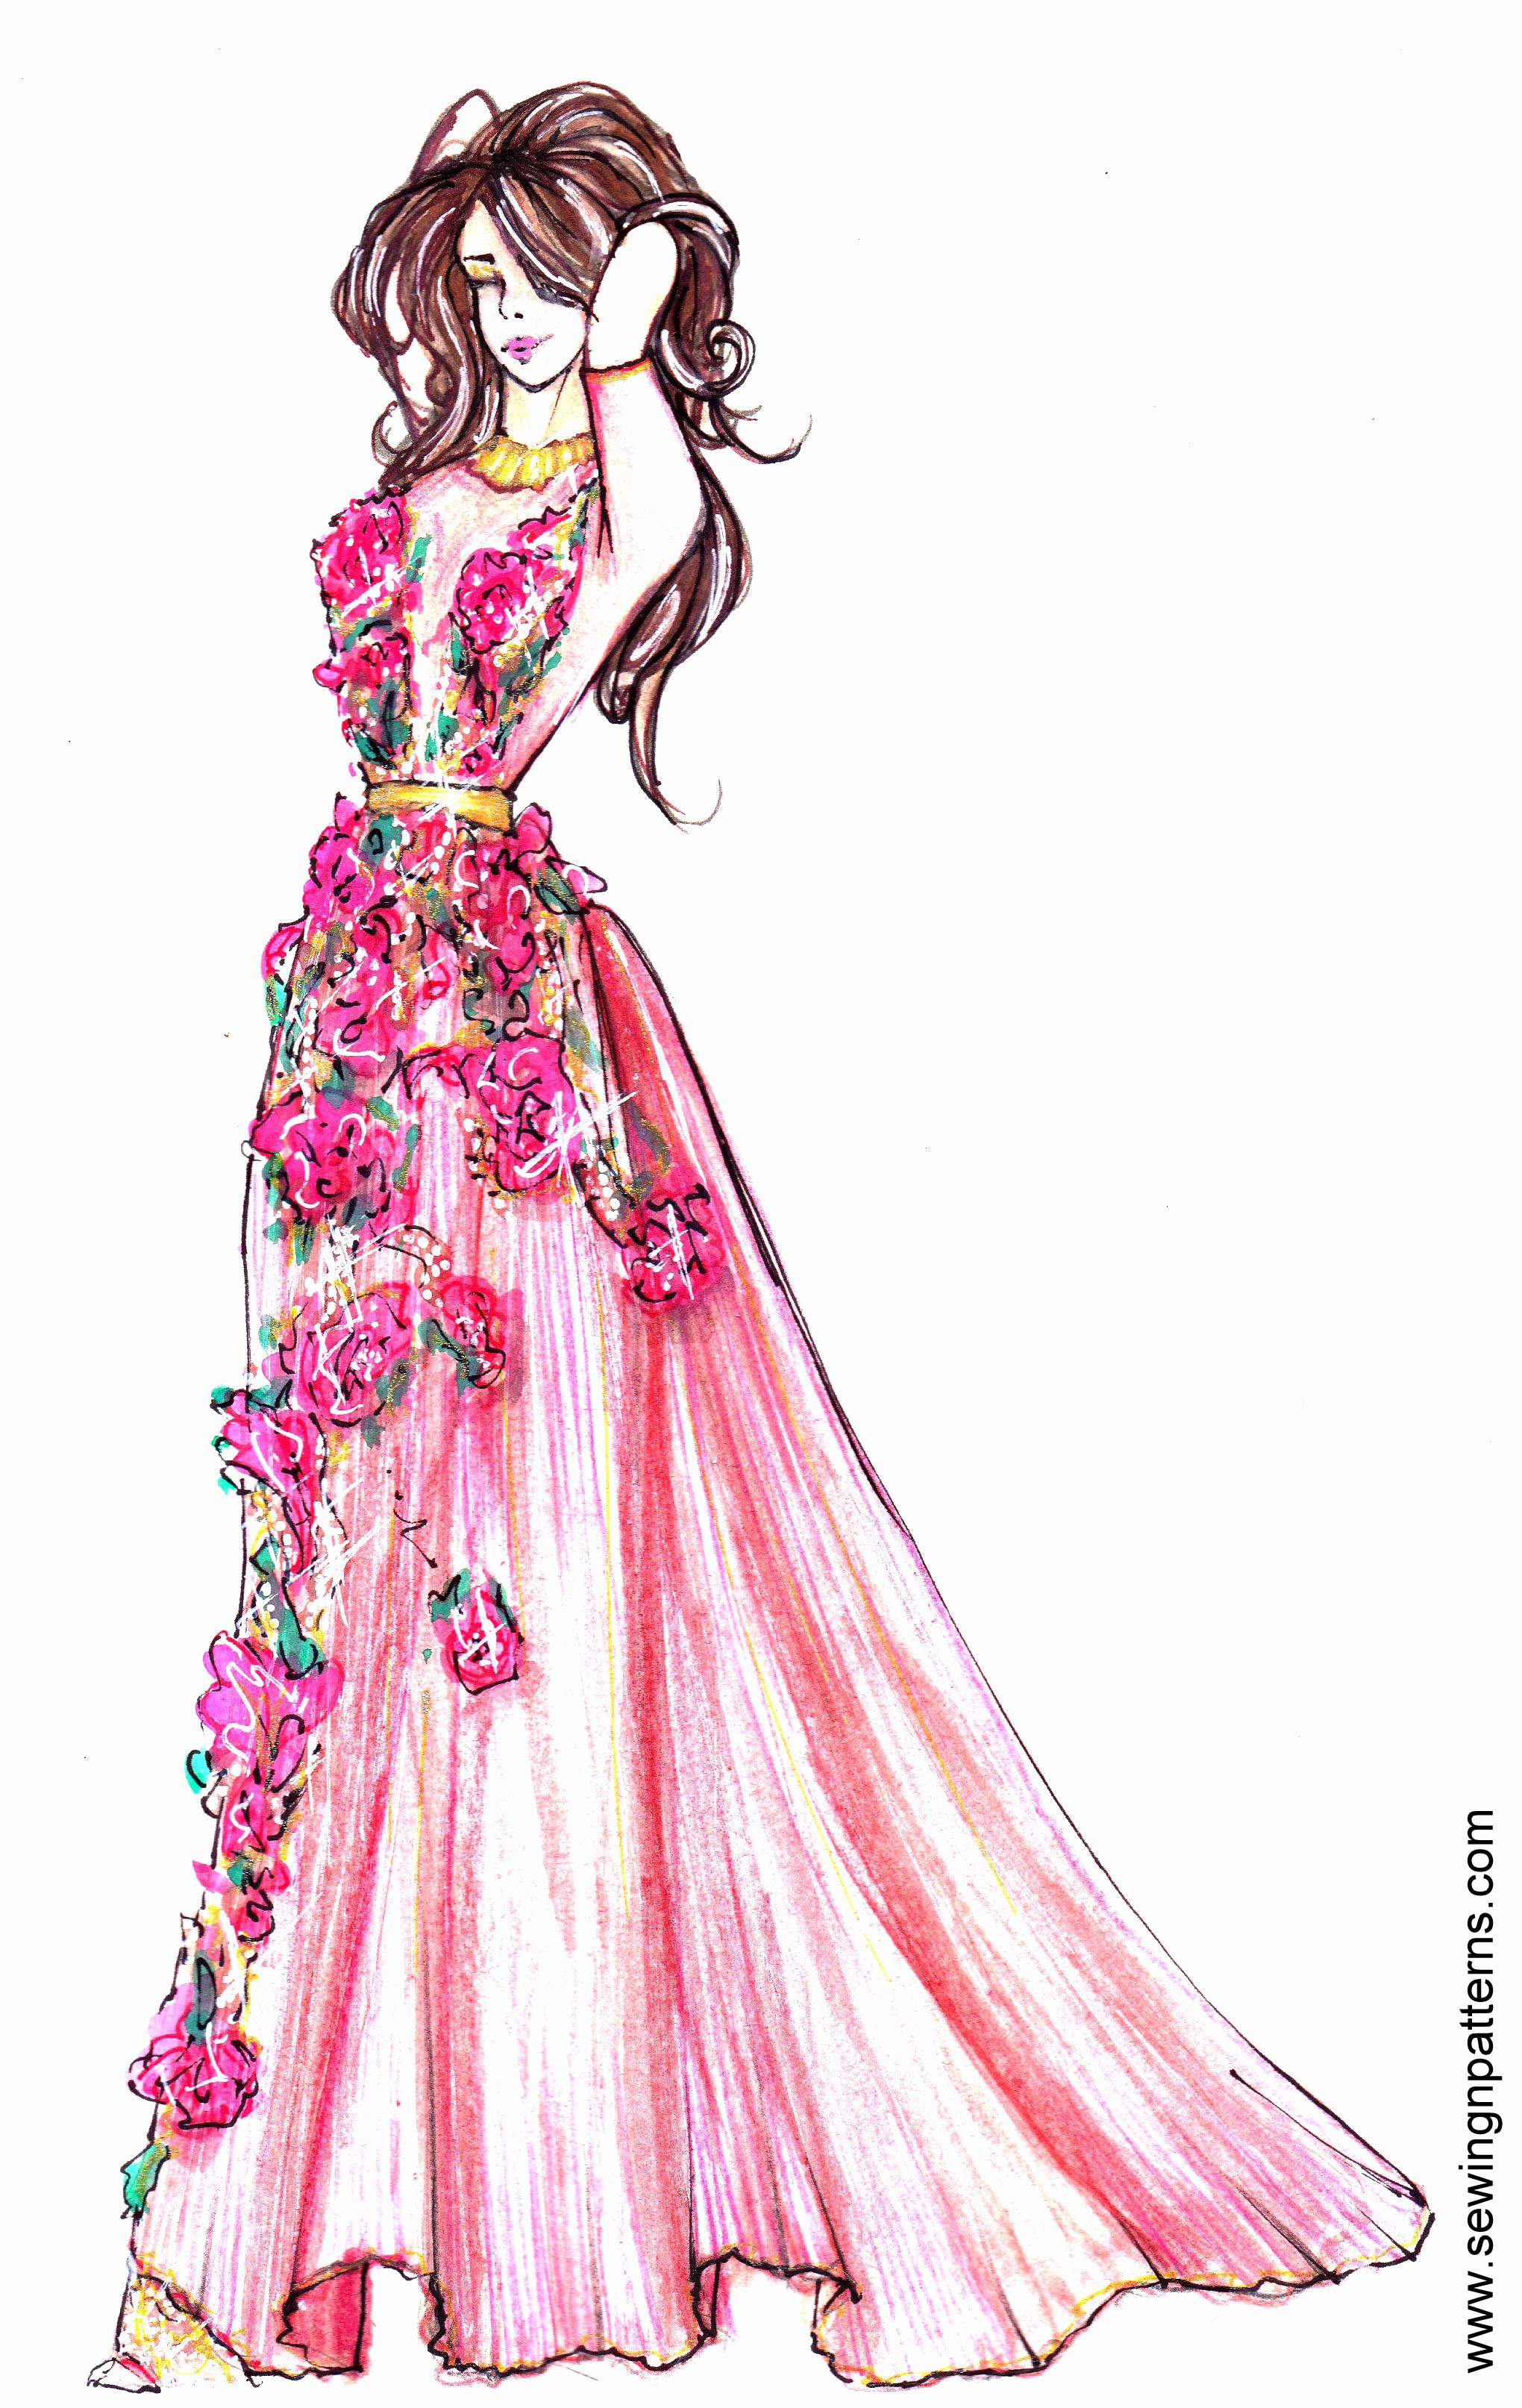 How to present fashion sketches to reach more people and get